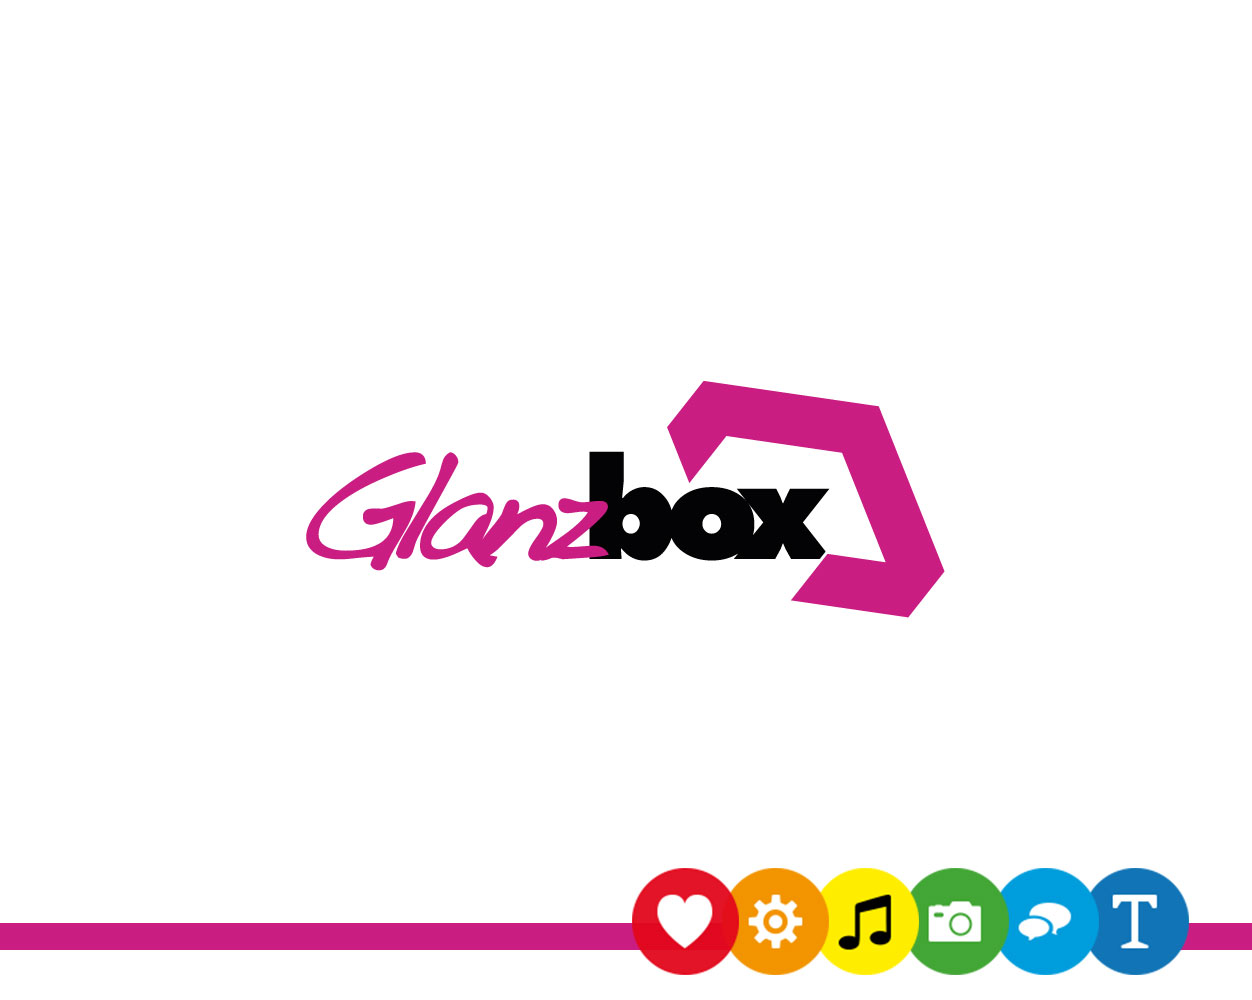 IPhoneBlog de Blogpost Glanzbox